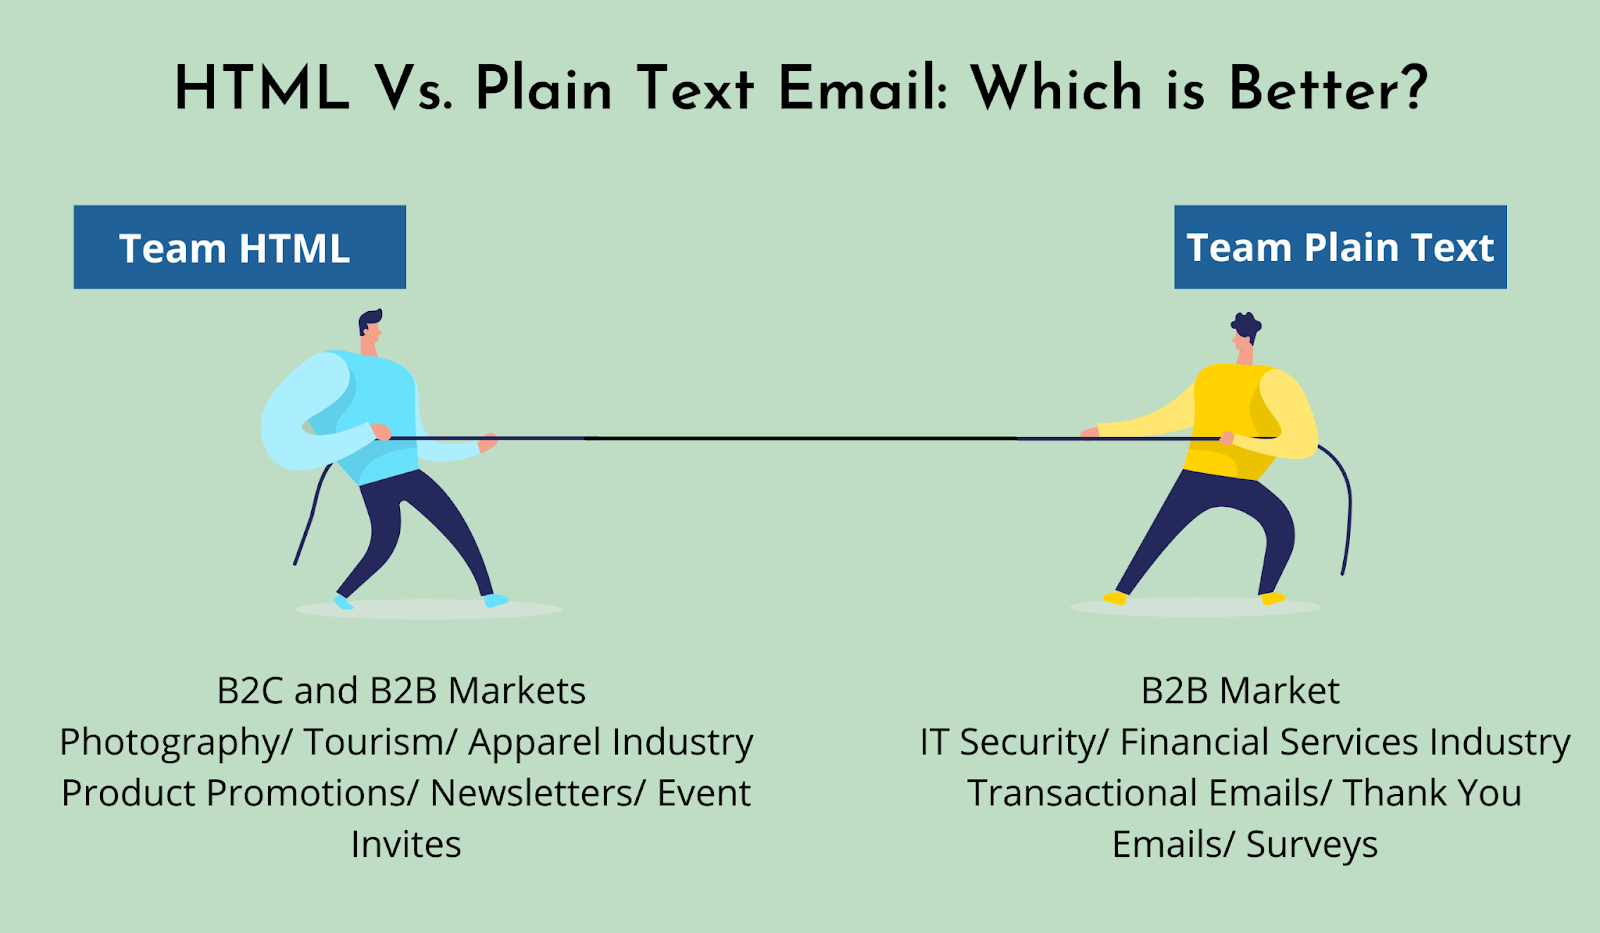 HTML Vs. Plain text email: which one is better?